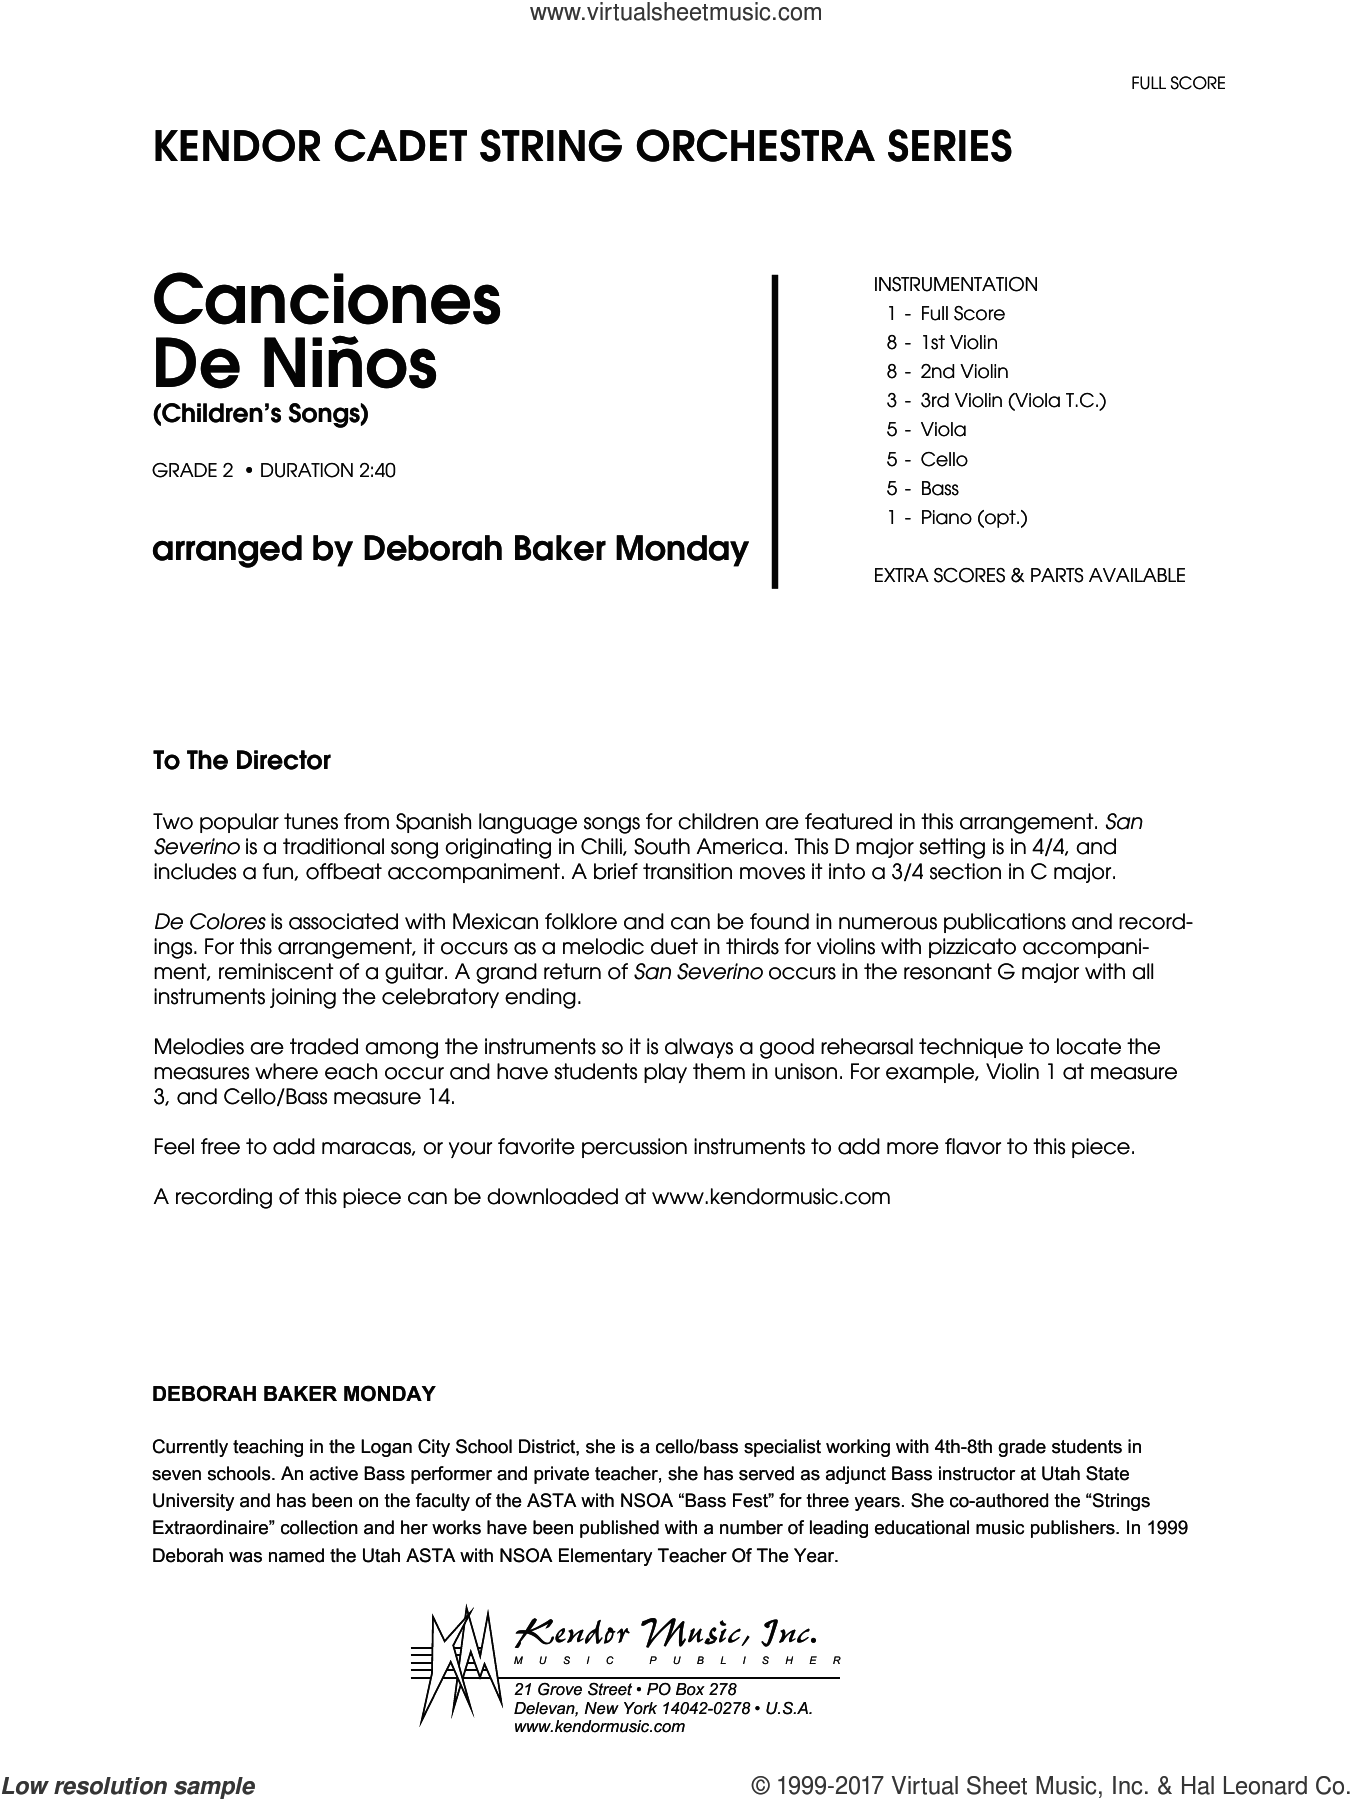 Canciones De Ninos (COMPLETE) sheet music for orchestra by Deborah Baker Monday, intermediate skill level